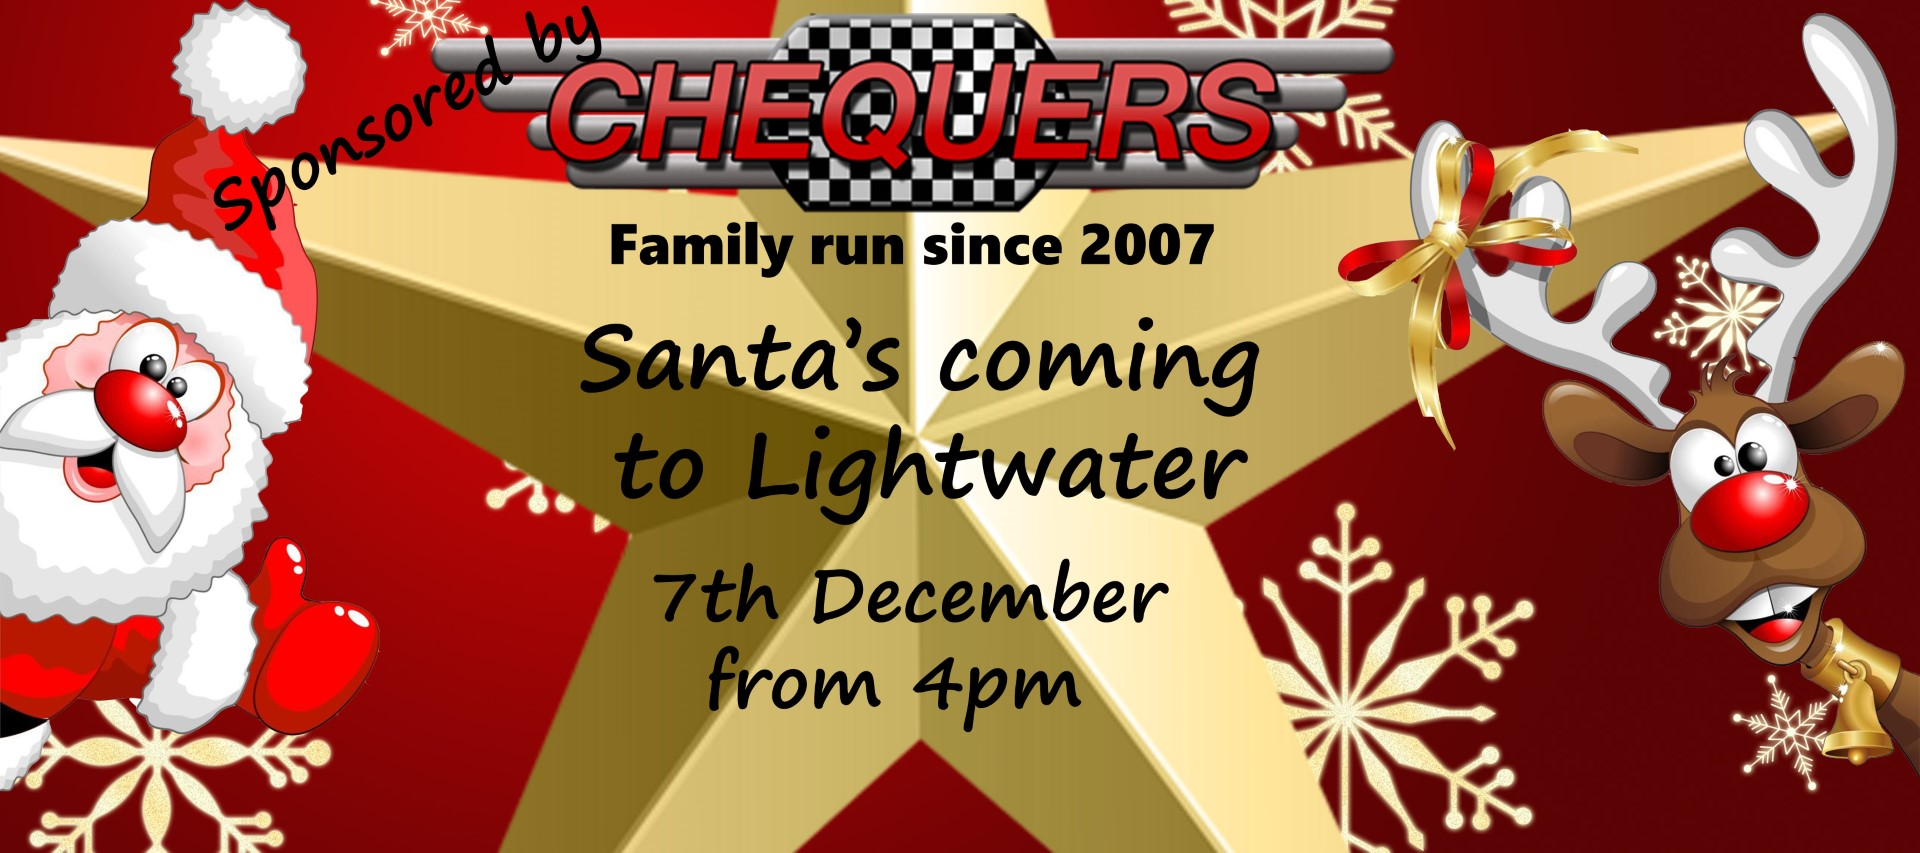 Santa-comes-to-lightwater2018